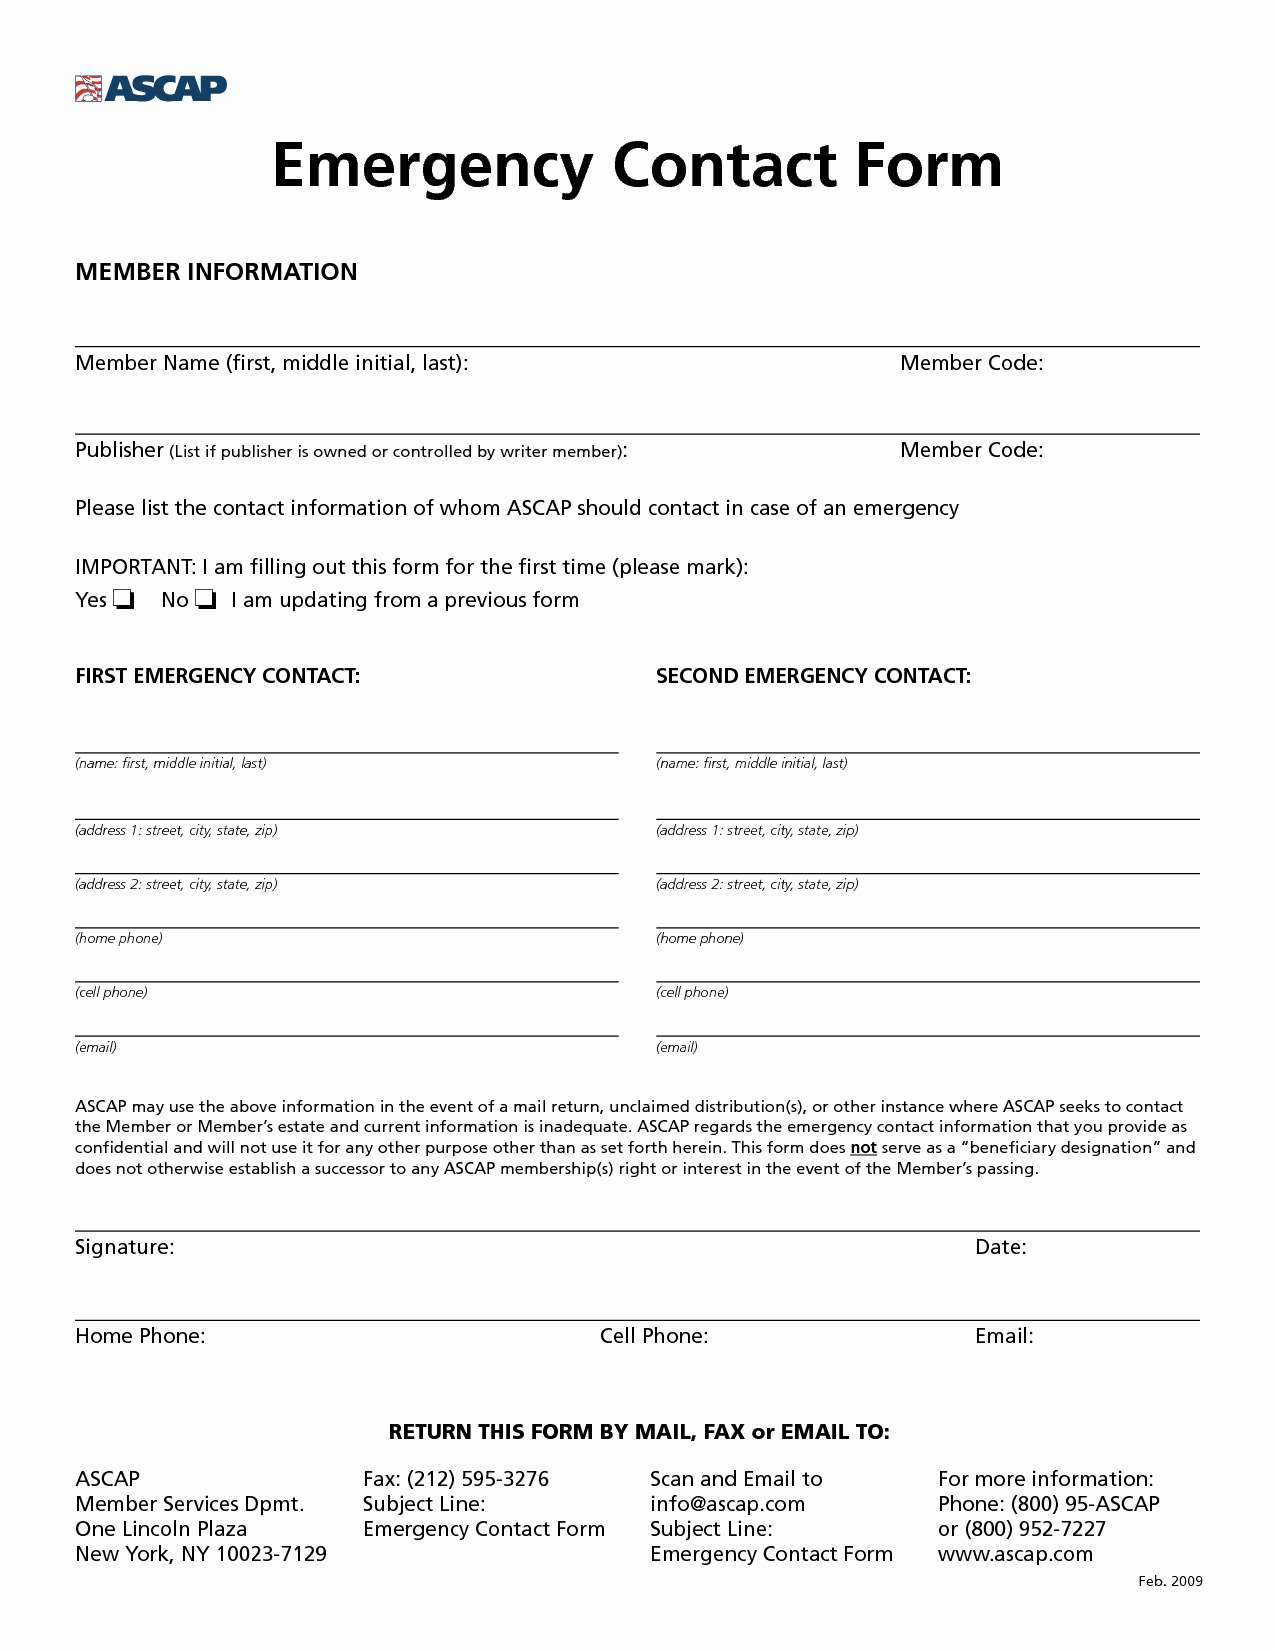 Emergency Contact form Template Free Fresh 8 Best Of Free Printable Emergency Contact form